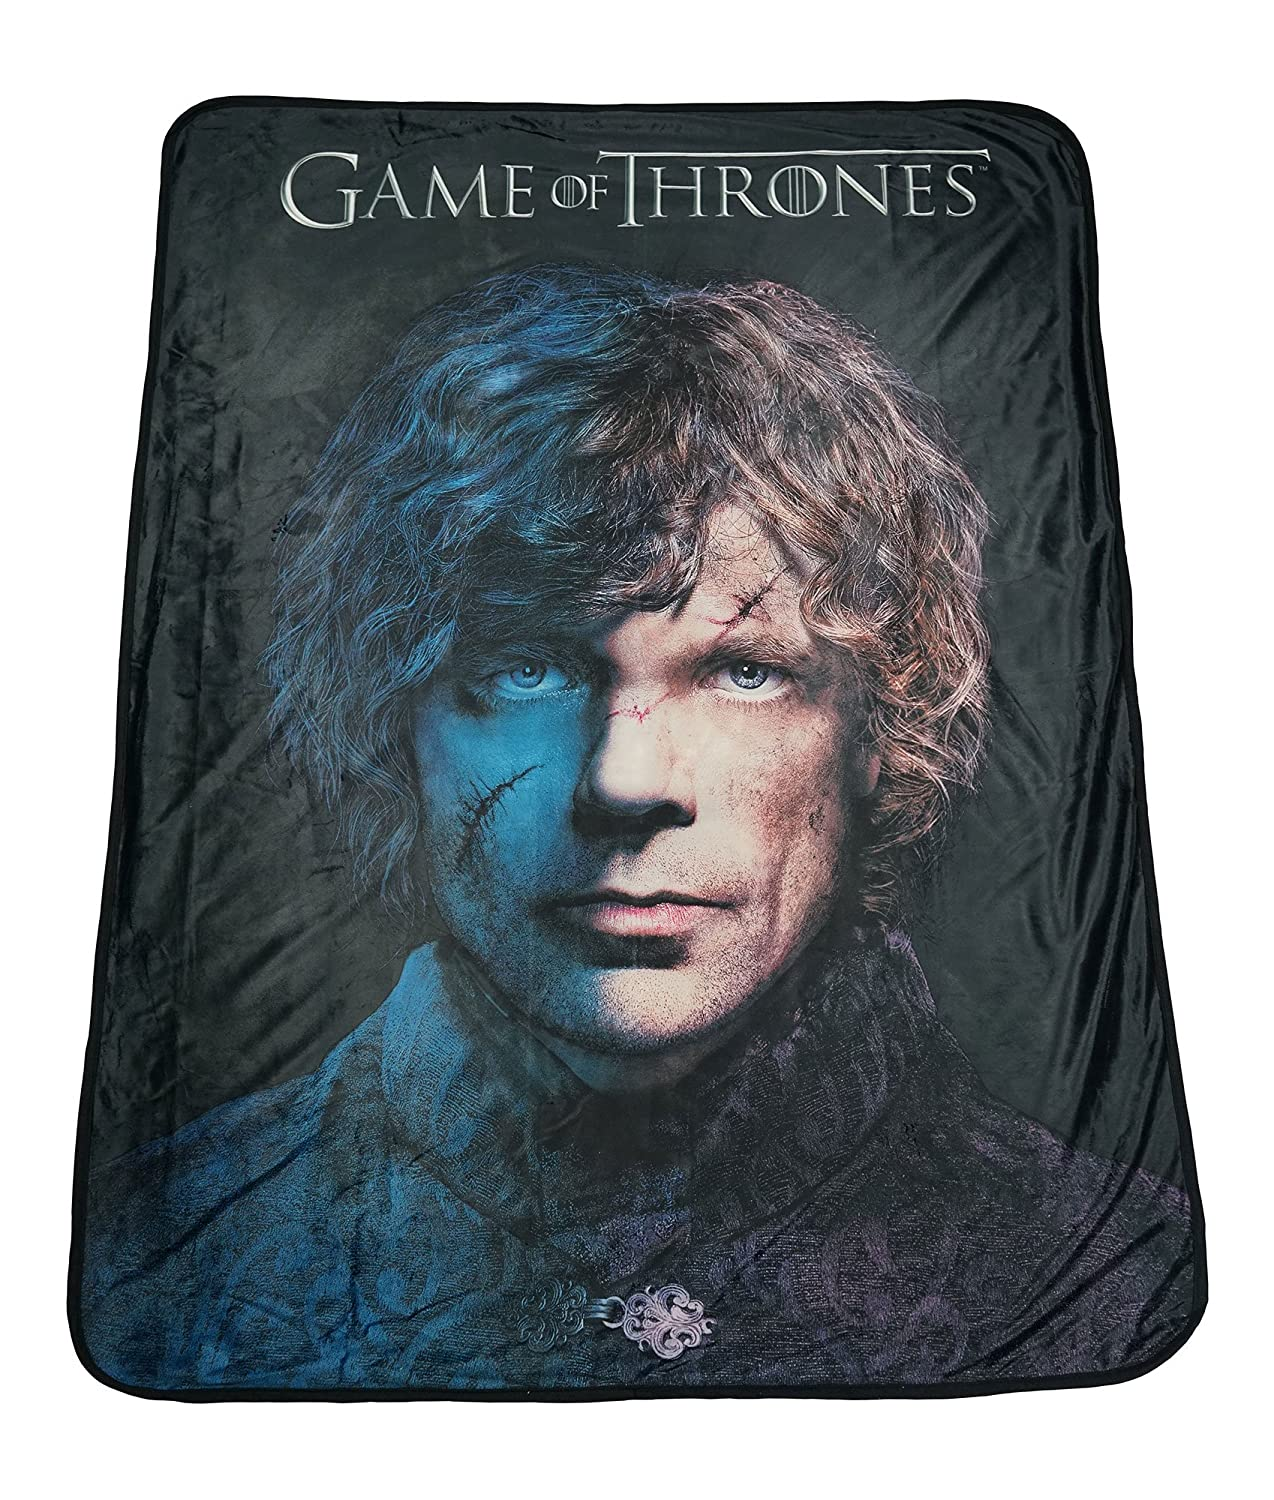 Rabbit Tanaka Game of Thrones 116,8/x 152,4/cm Tryion Couvre-lit Polaire Couverture